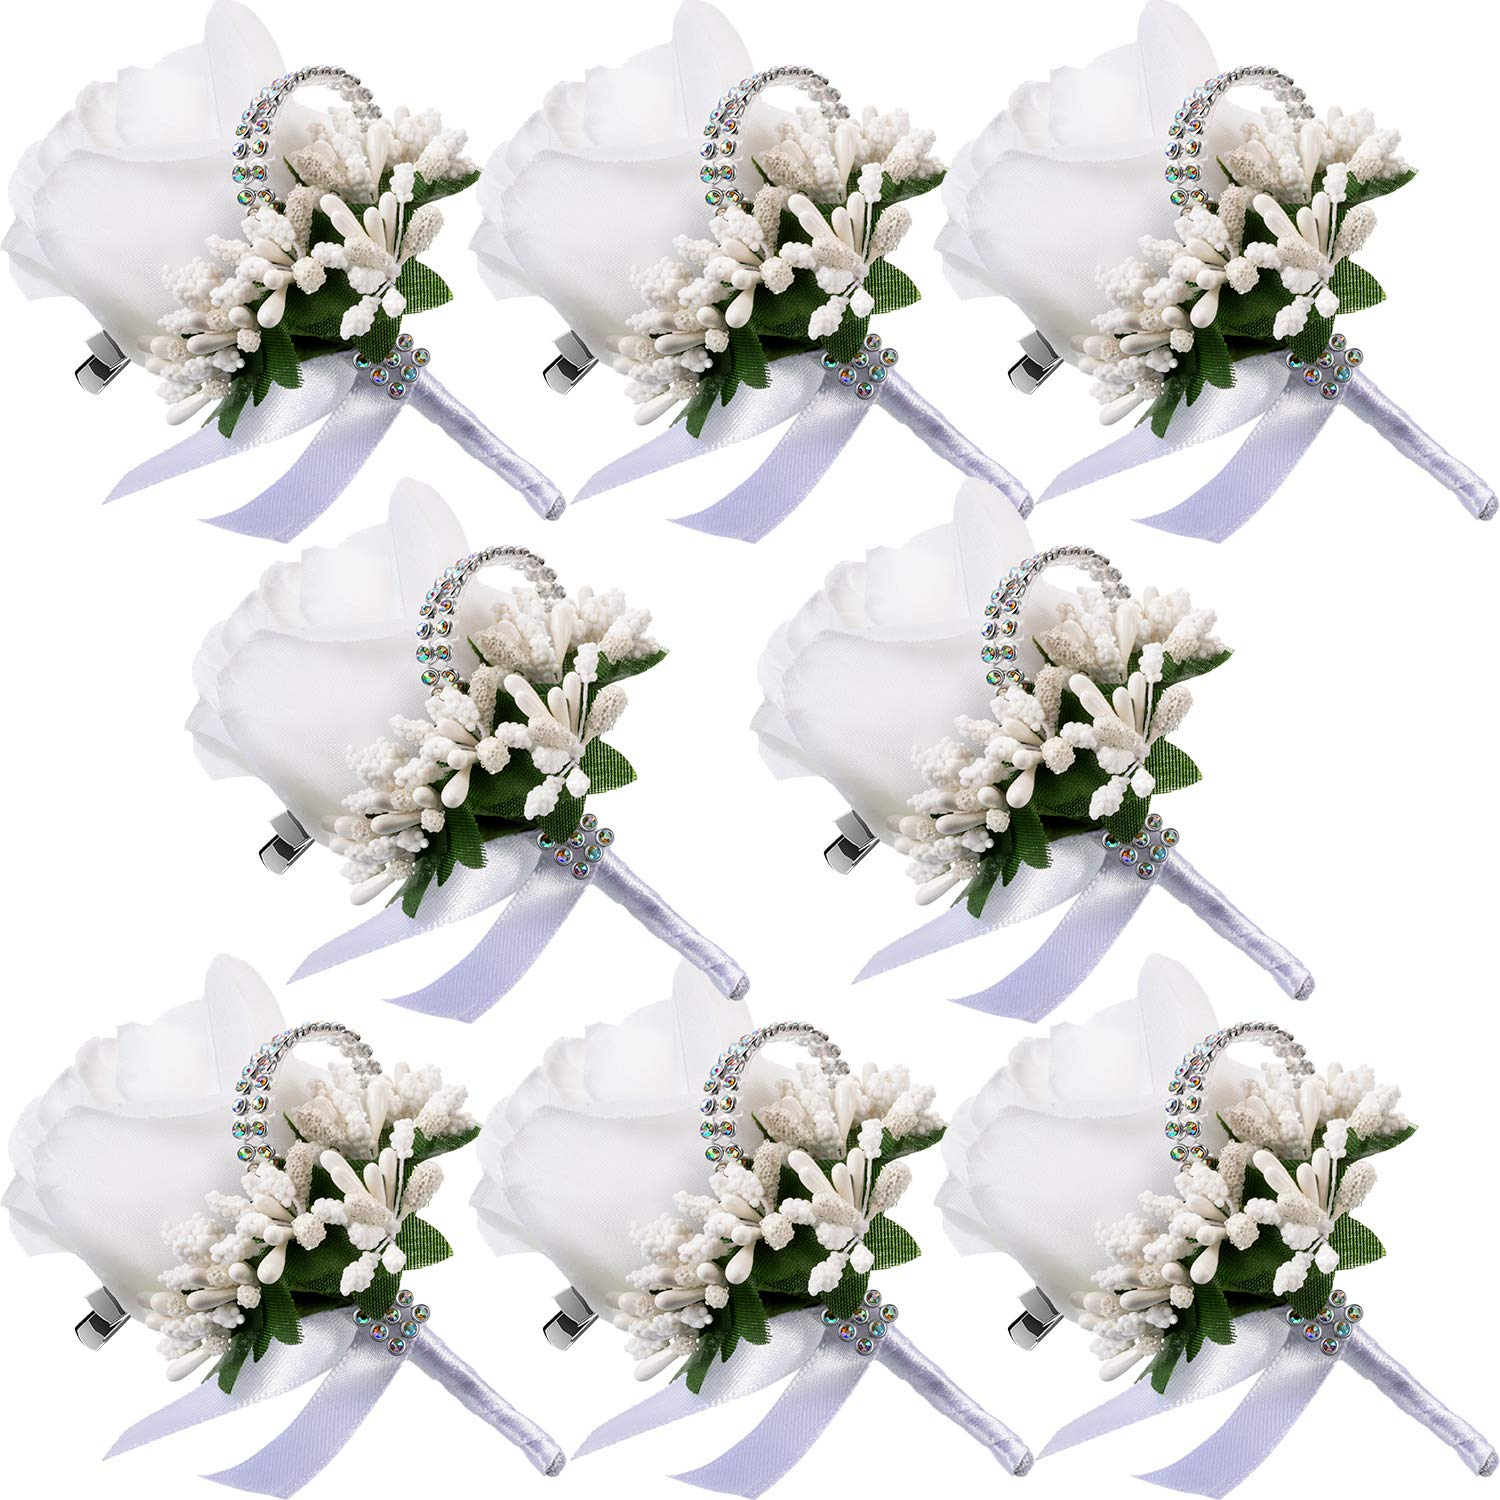 Men Wedding Boutonniere Wedding Flowers Buttonholes Accessories Groom Groomsman Prom Party Suit Decoration (8, White 7)